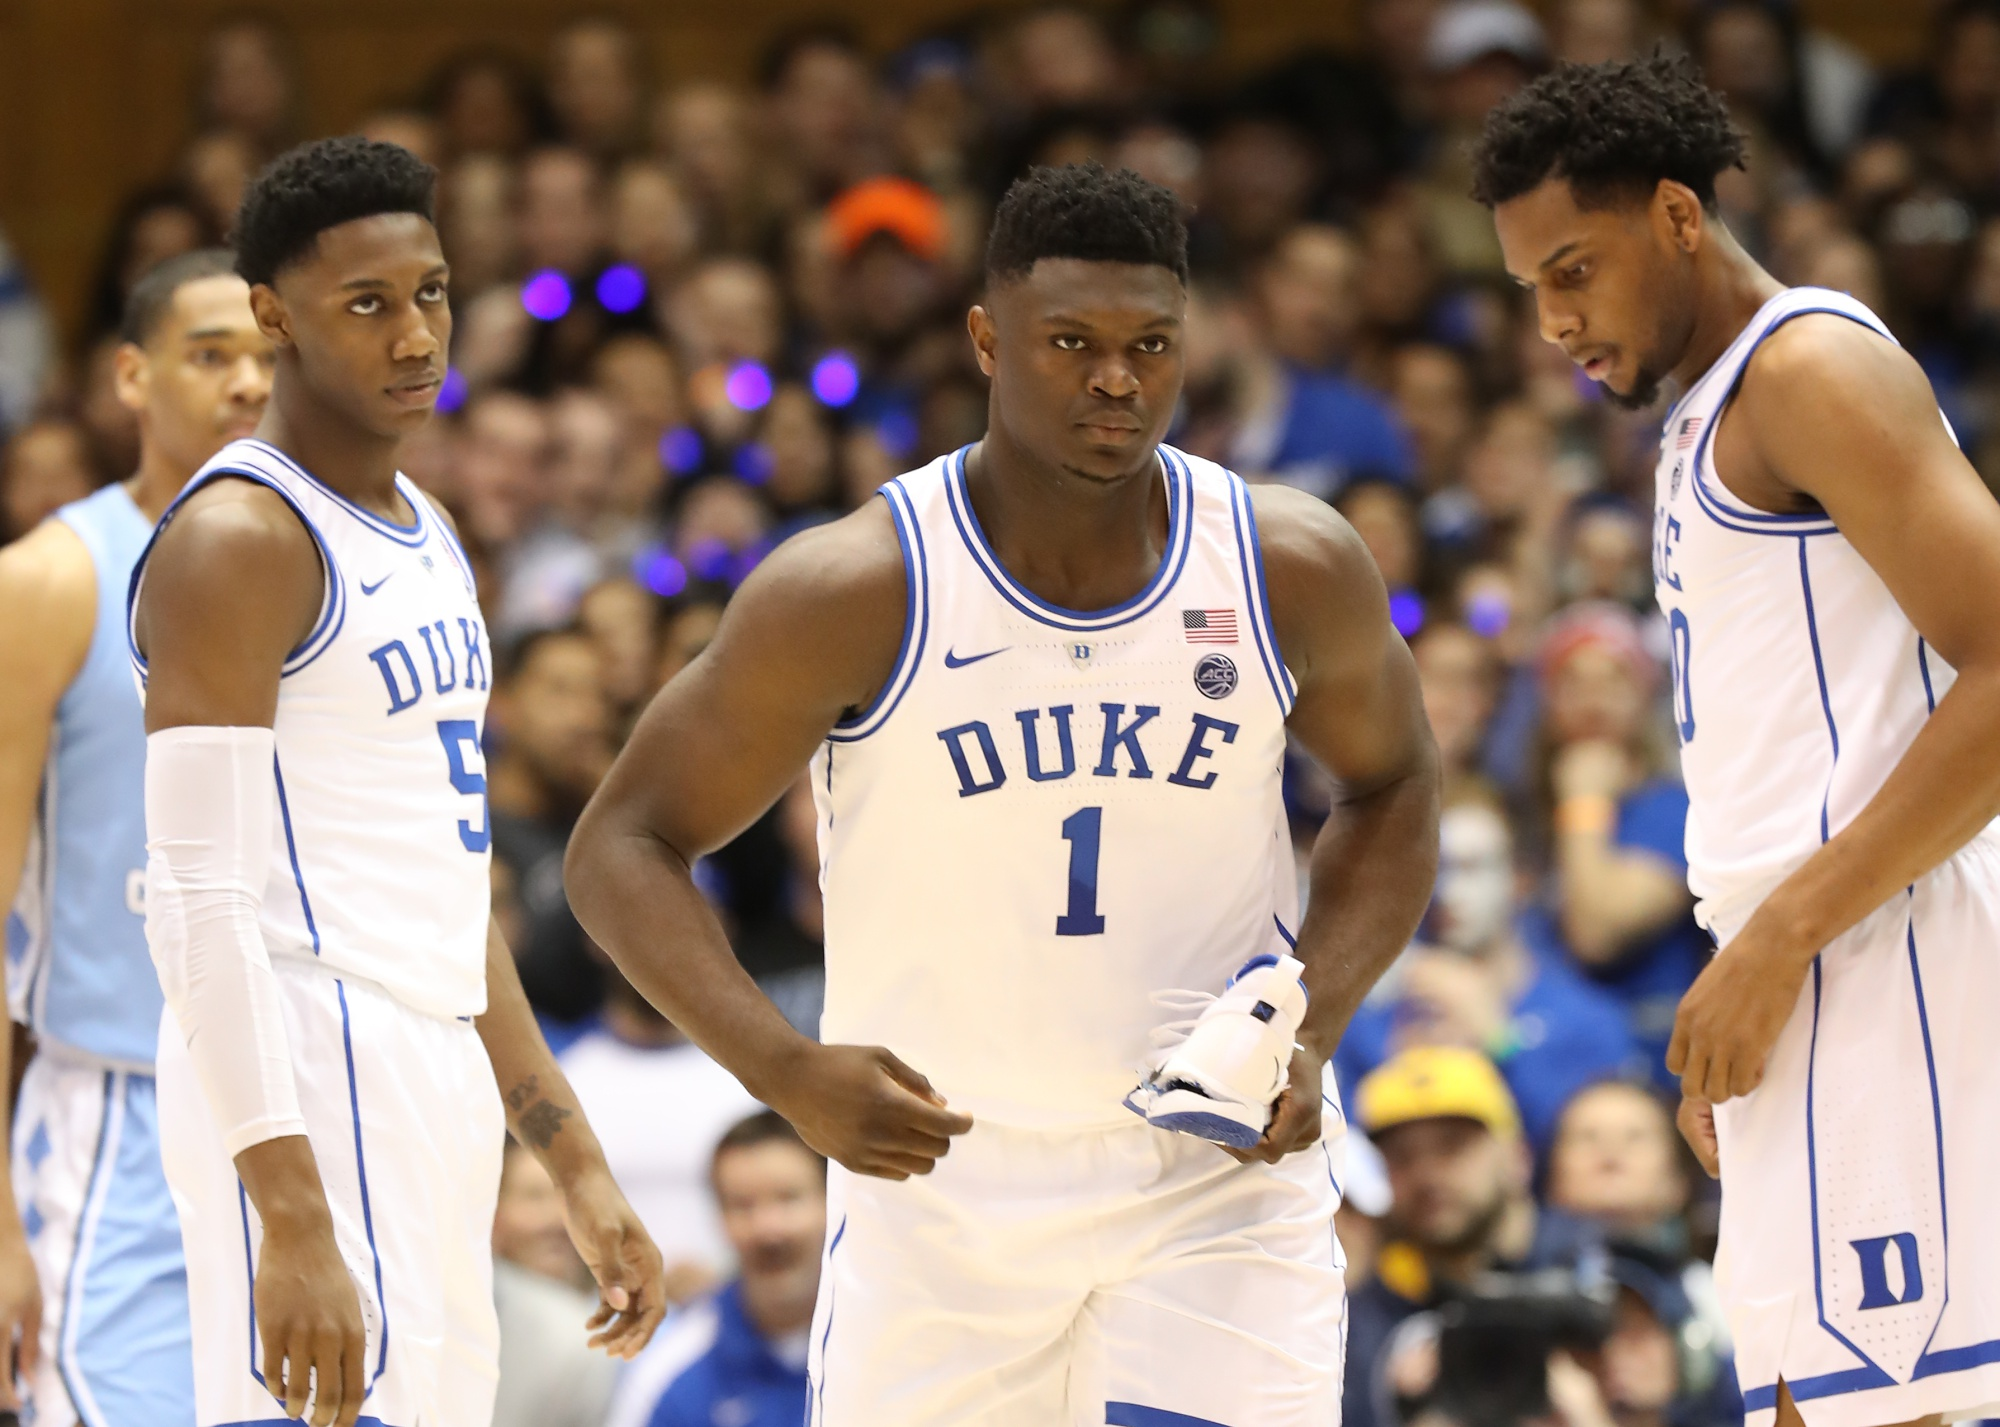 Teammates RJ Barrett #5 and Marques Bolden #20 of the Duke Blue Devils watch as Zion Williamson #1 of the Duke Blue Devils reacts after falling as his shoe breaks against Luke Maye #32 of the North Carolina Tar Heels during their game at Cameron Indoor Stadium on February 20, 2019 in Durham, North Carolina.